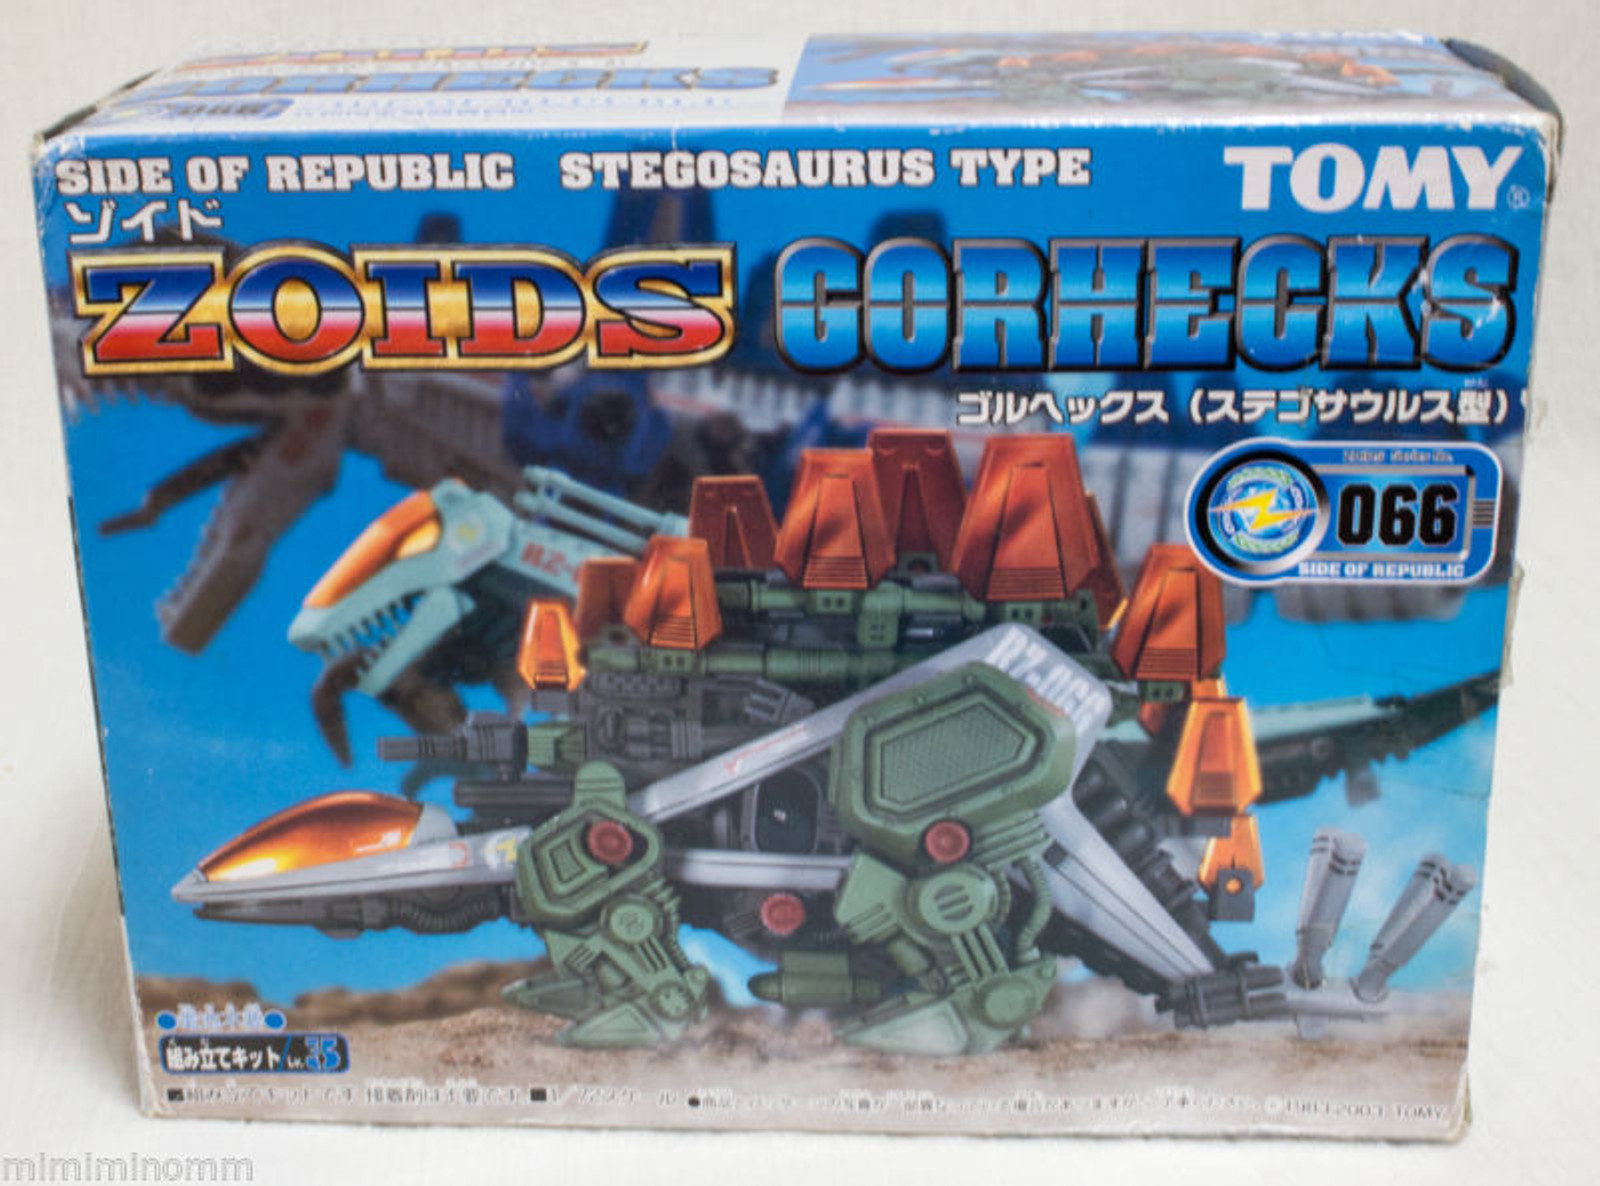 ZOIDS Gorhecks Stegosaurus Type 066 Side of Republic JAPAN TOMY FIGURE MODEL